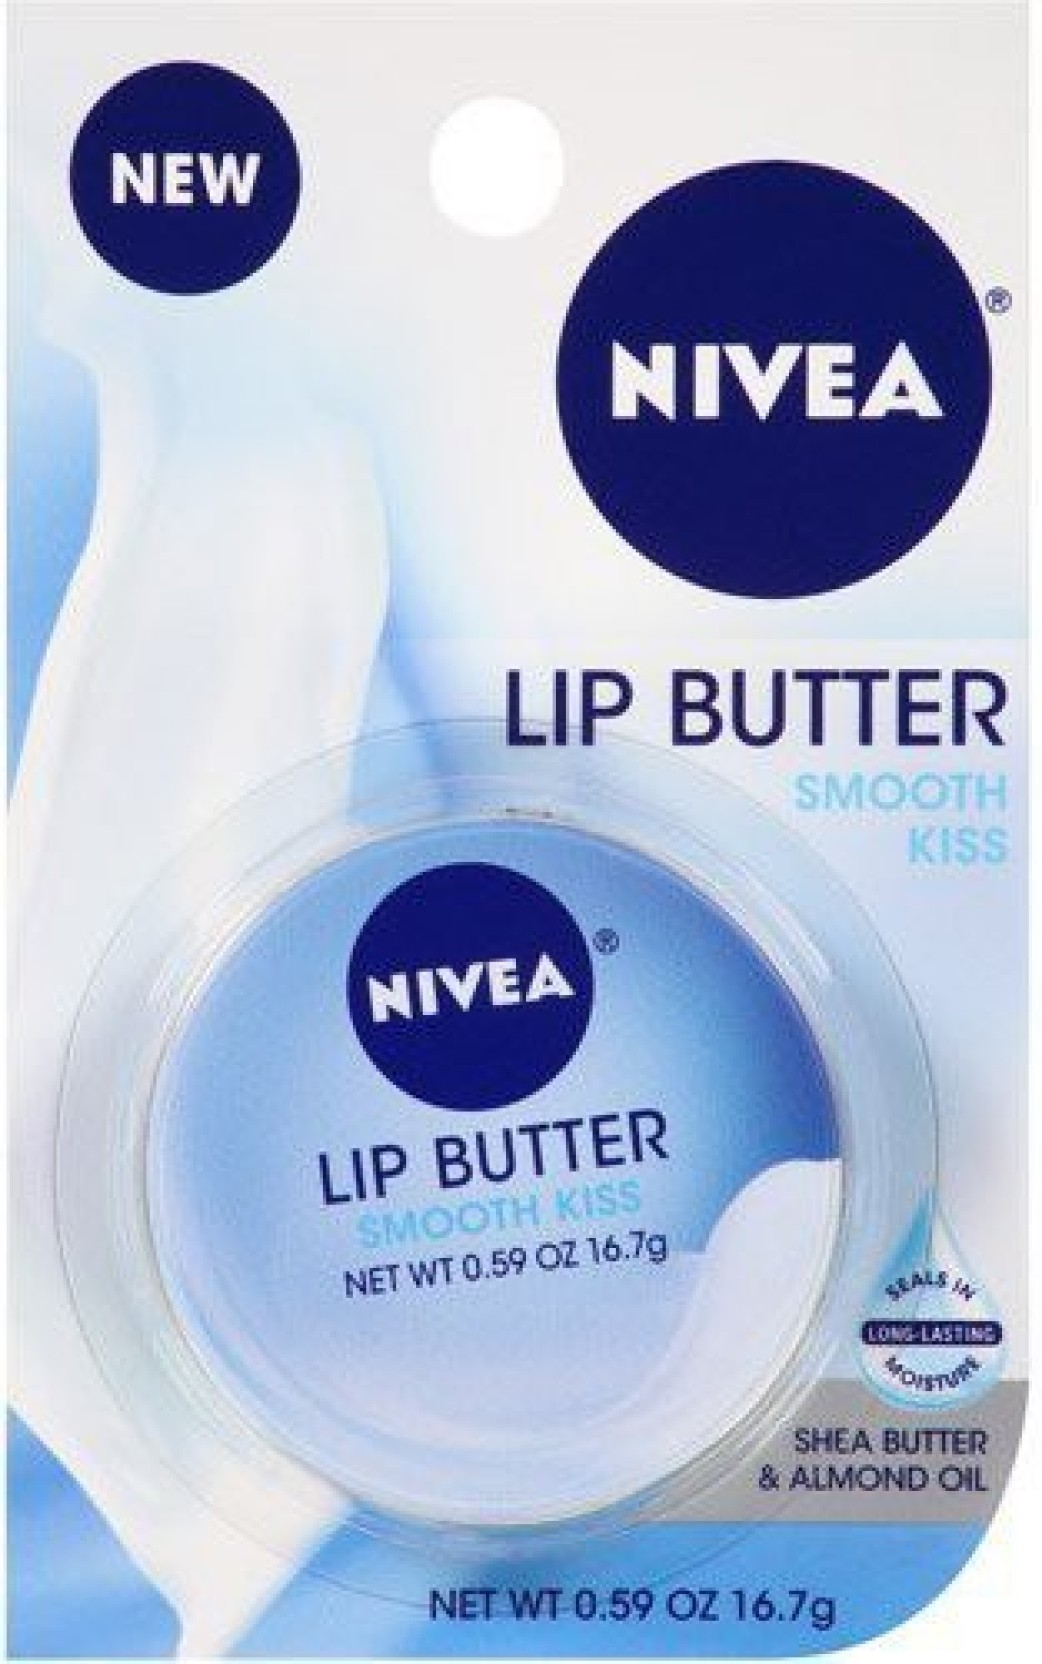 Nivea Lip Butter Kiss Tin Smooth Pack Of 6 Price In India Buy Share